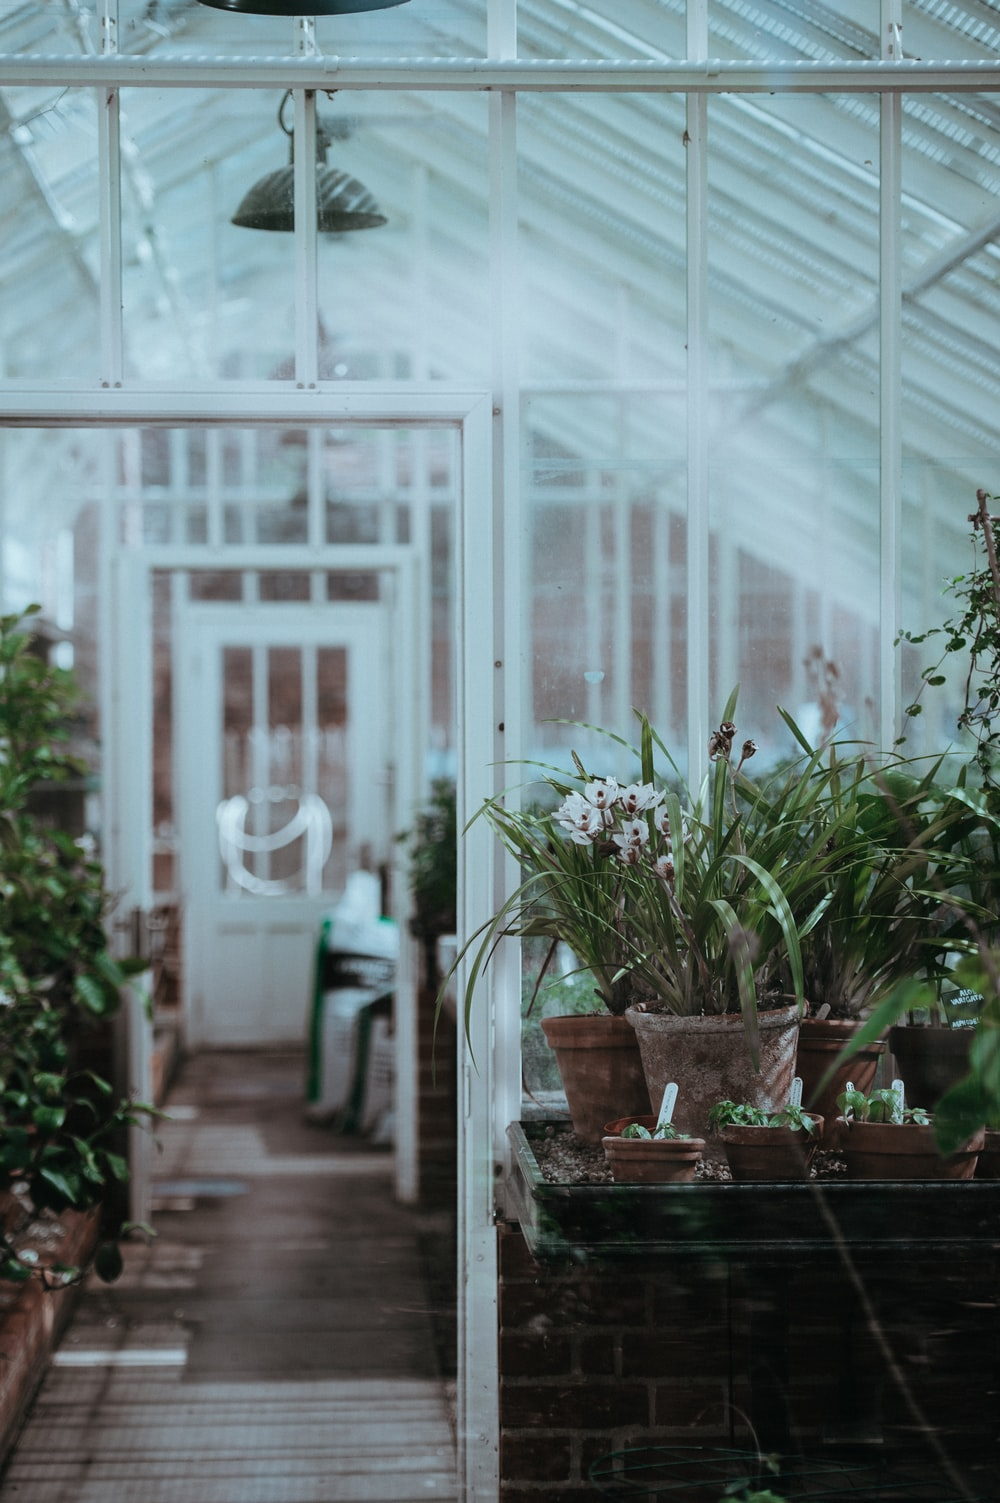 green plants inside the greenhouse